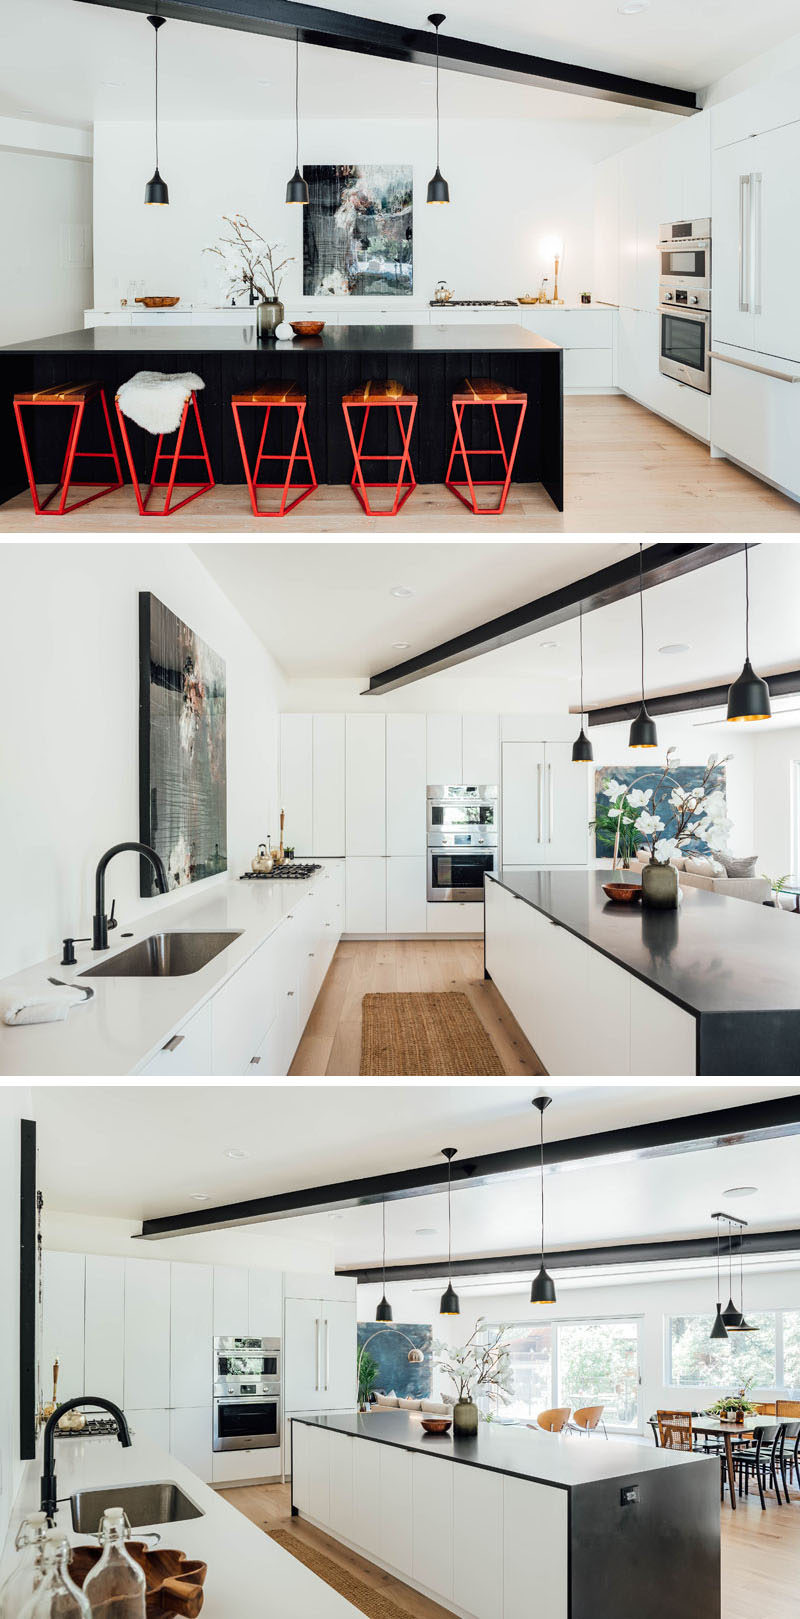 The dark kitchen island contrasts the minimalist white cabinets and complements the exposed steel beams, however from within the kitchen, the island cabinets are actually white to match the other surrounding cabinets. #KitchenDesign #ModernKitchen #WhiteKitchen